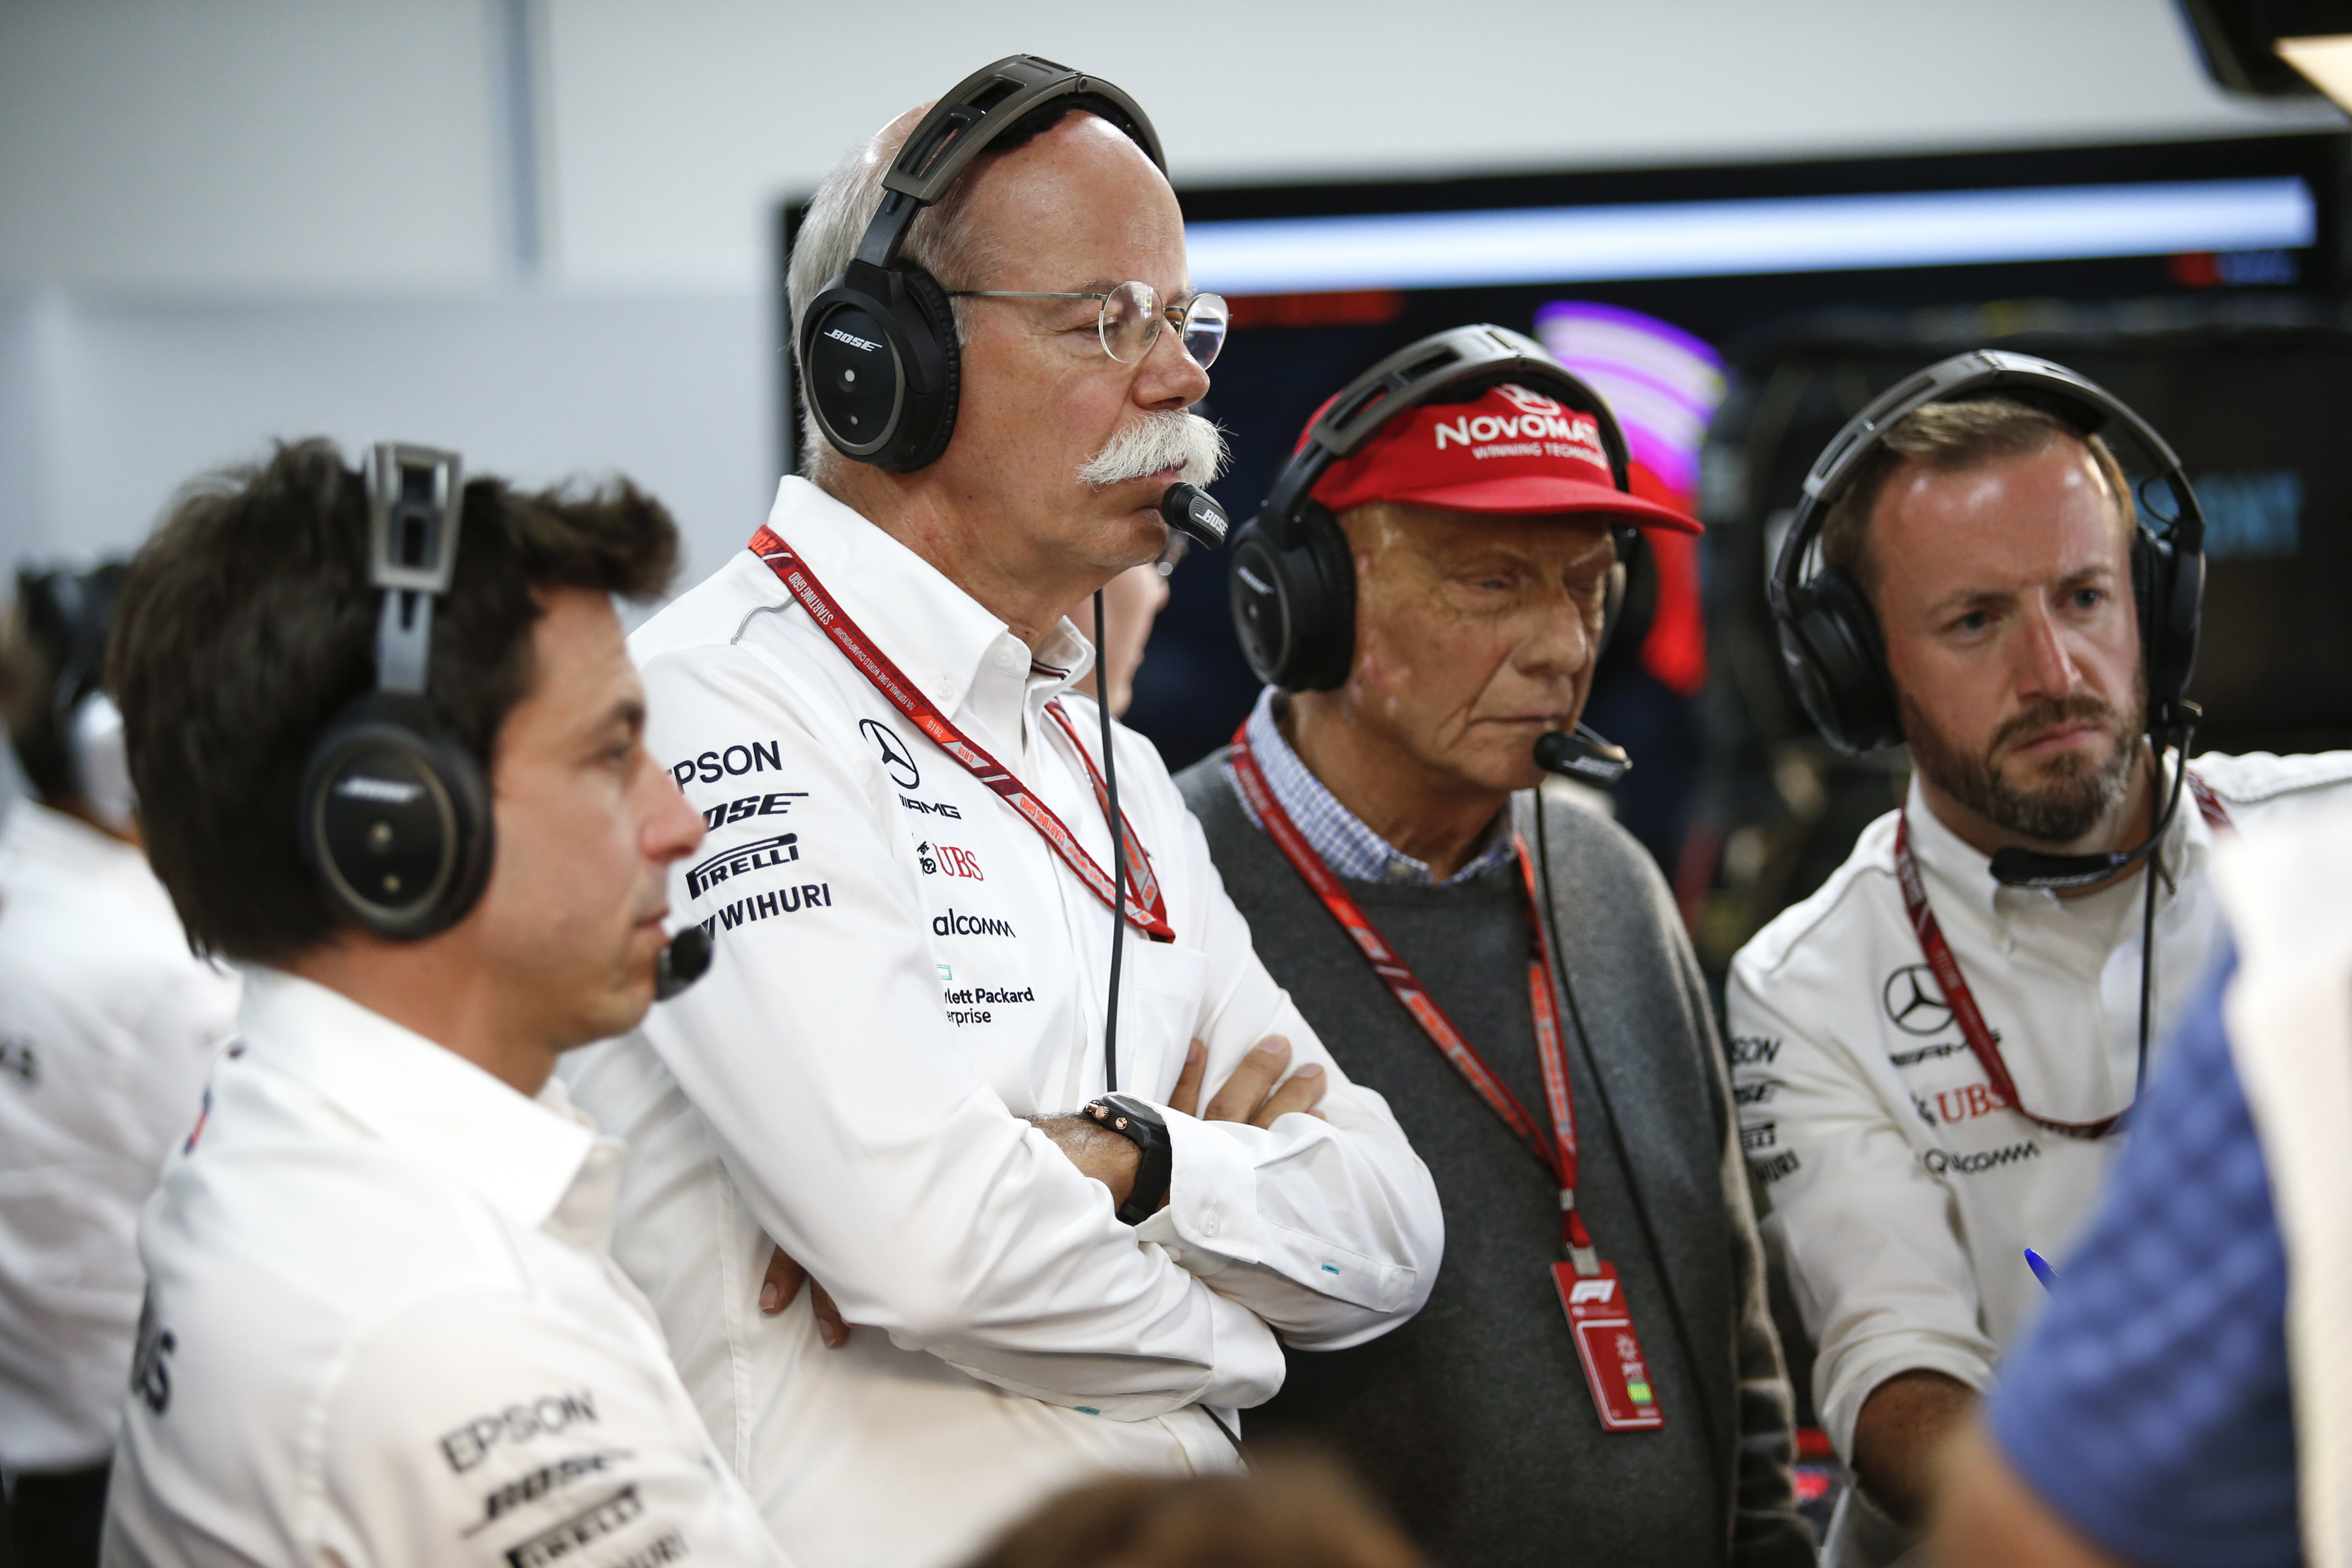 Lauda with the Mercedes team. Image: PA Images